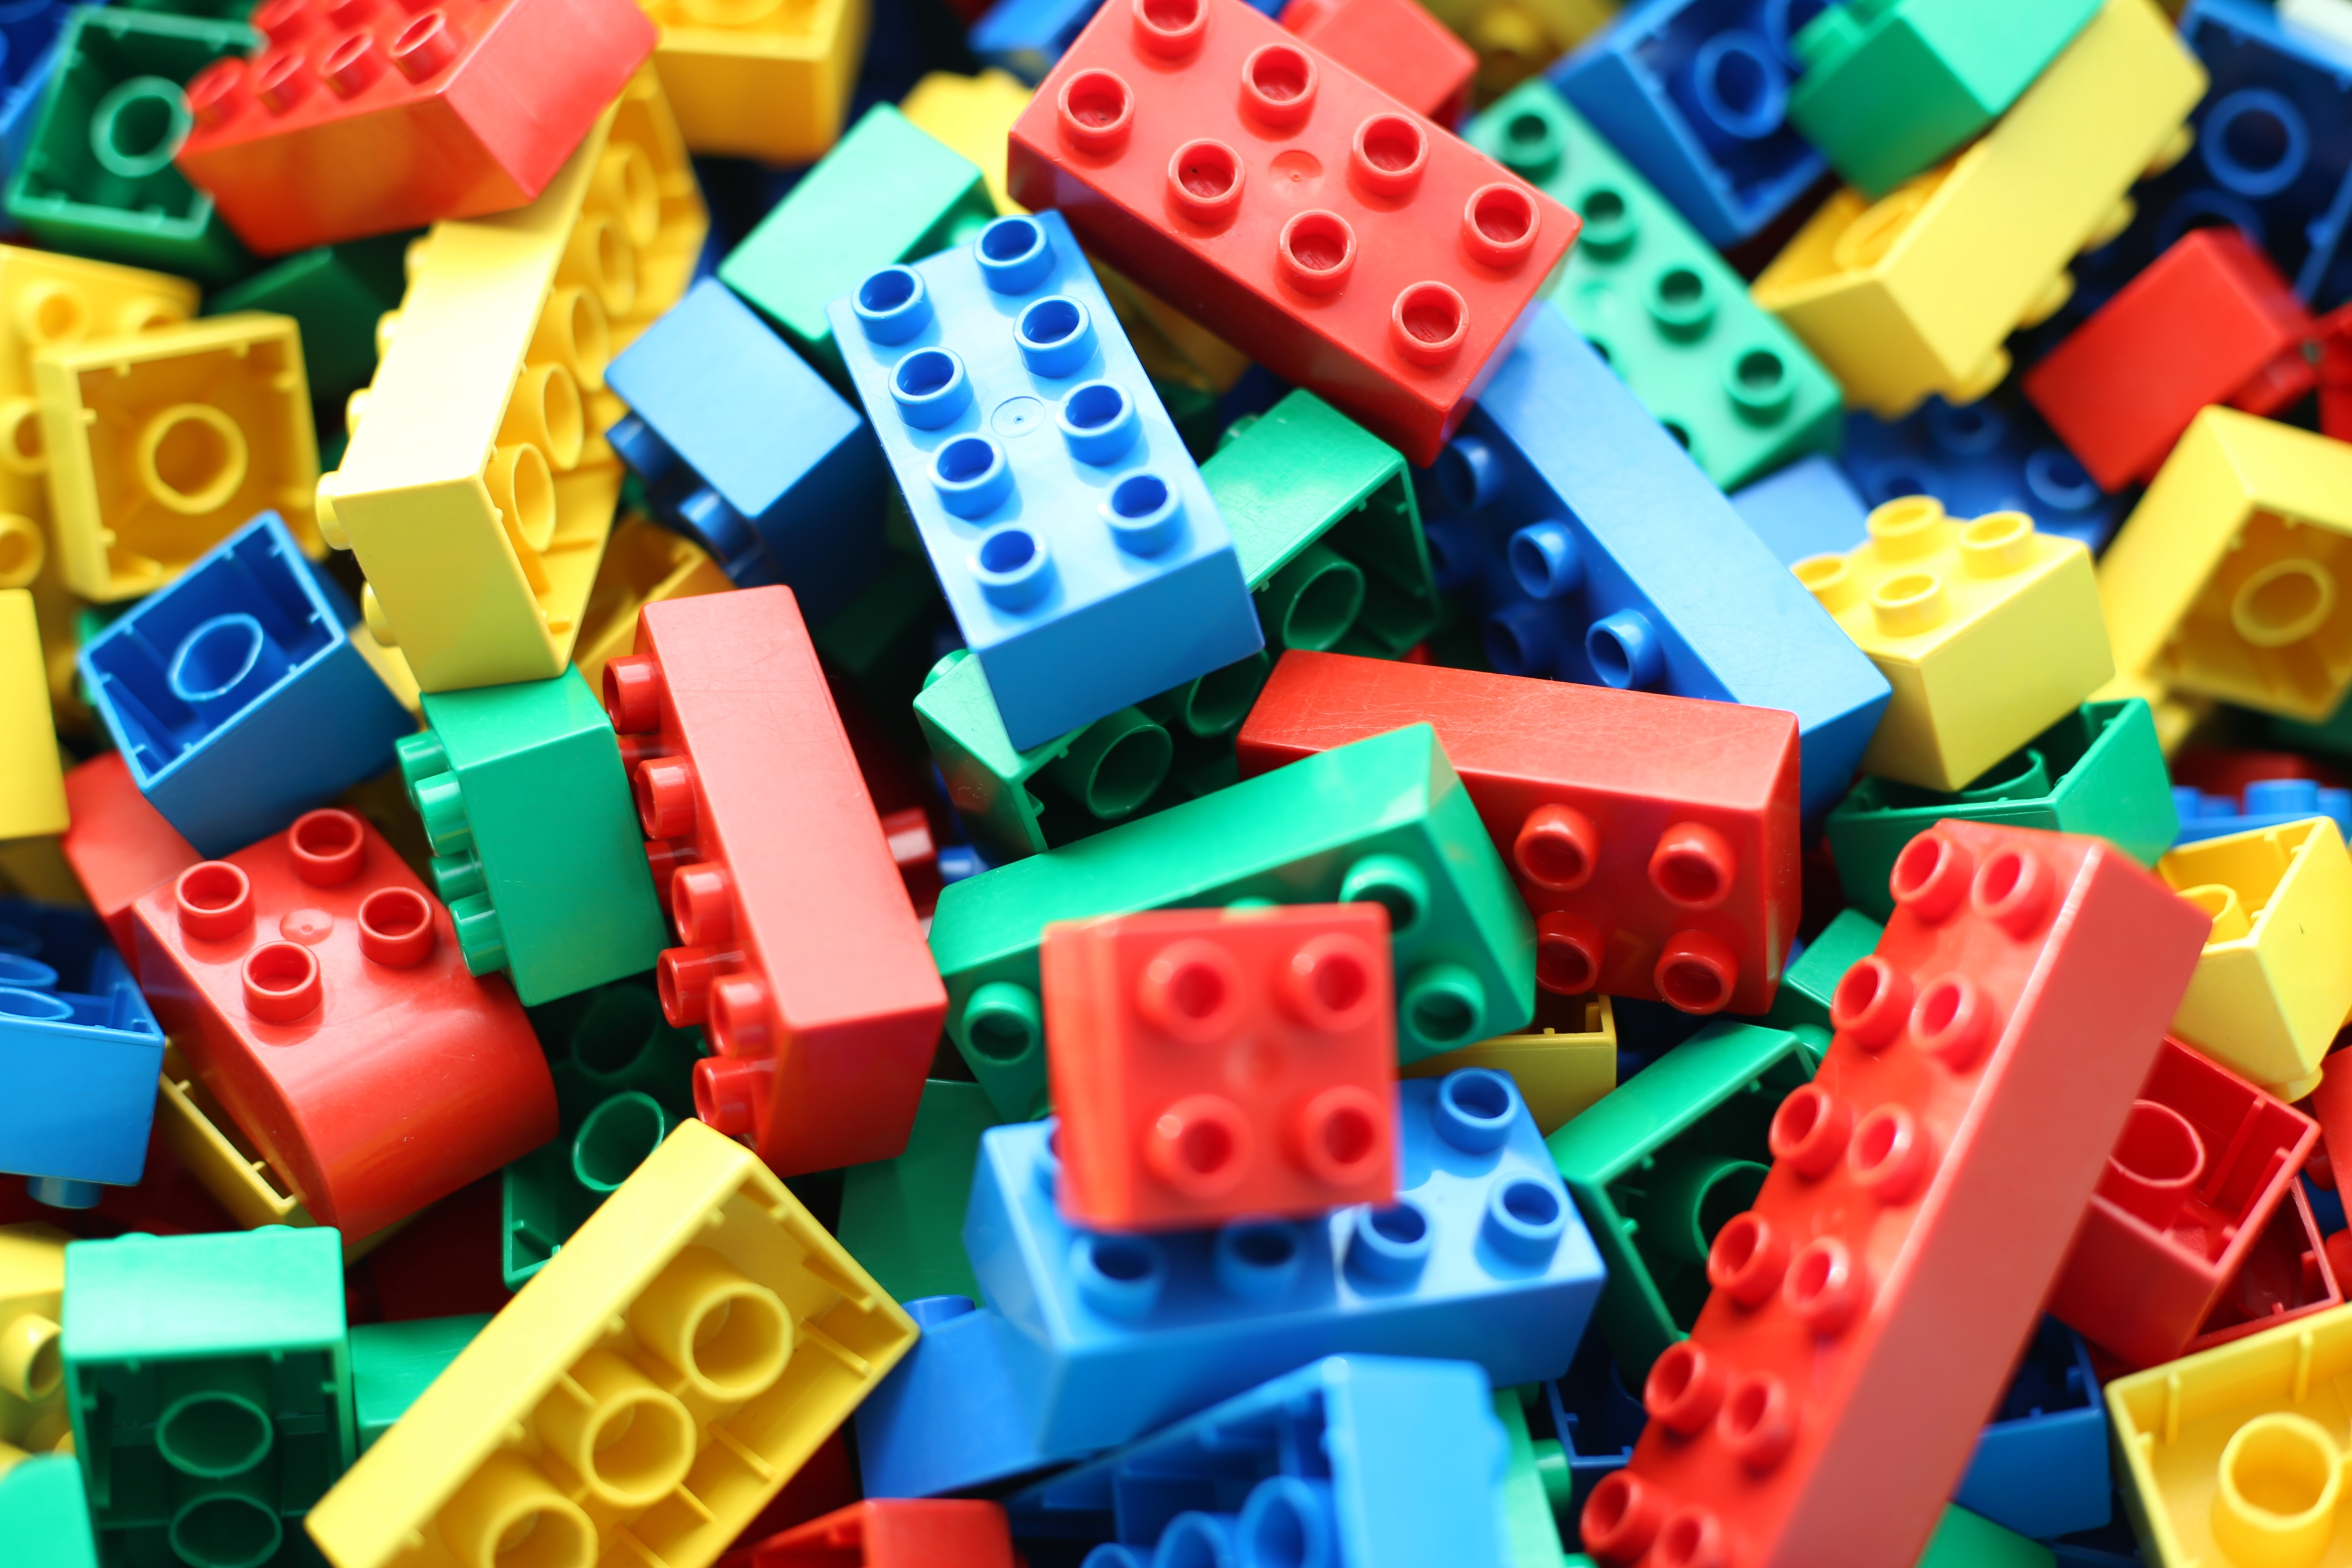 All Lego Toys : Lego toys a better investment than gold anthemvault news